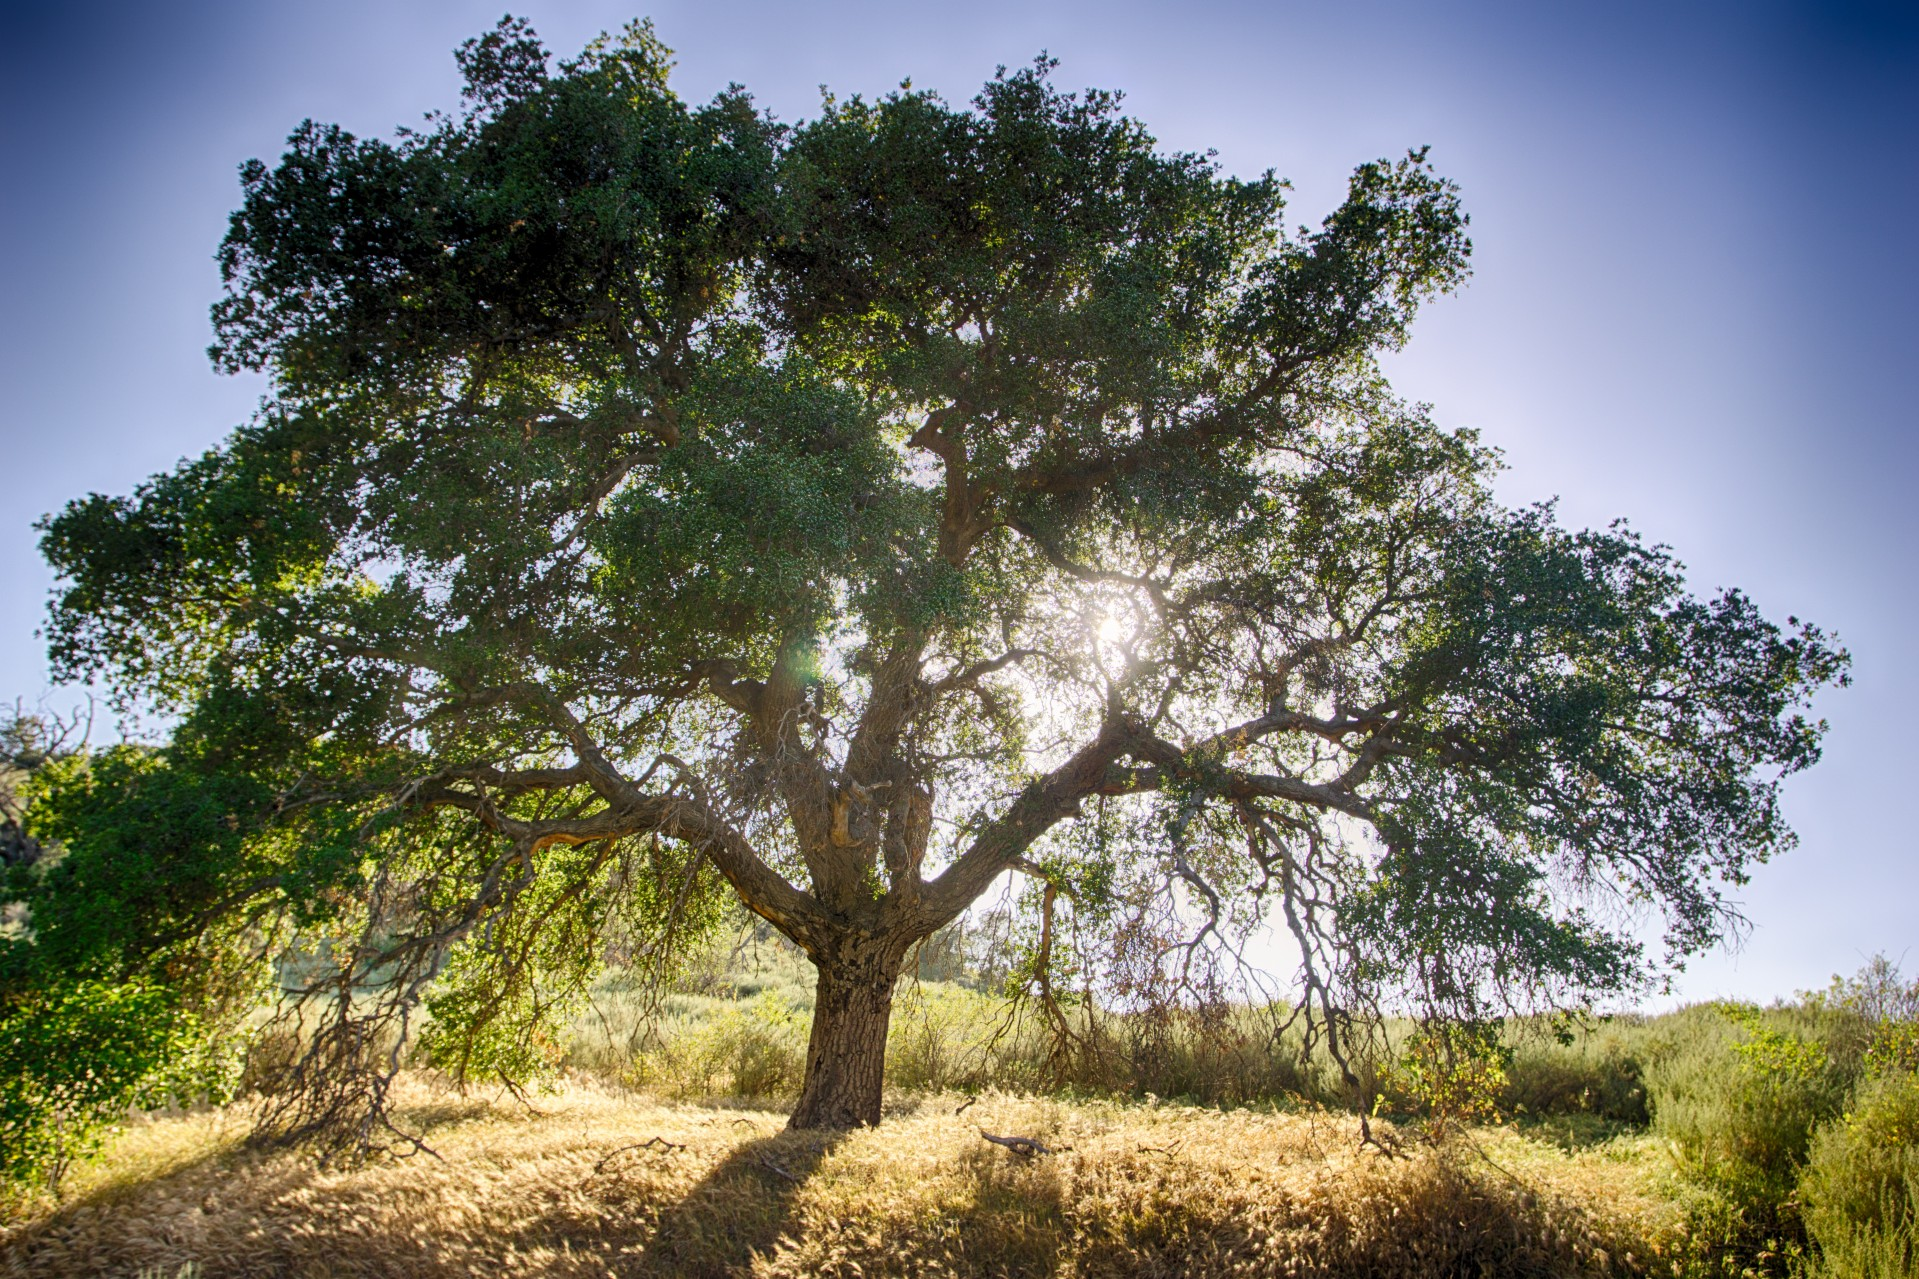 Didyouknow the evaporation from a large oak or beech tree is from